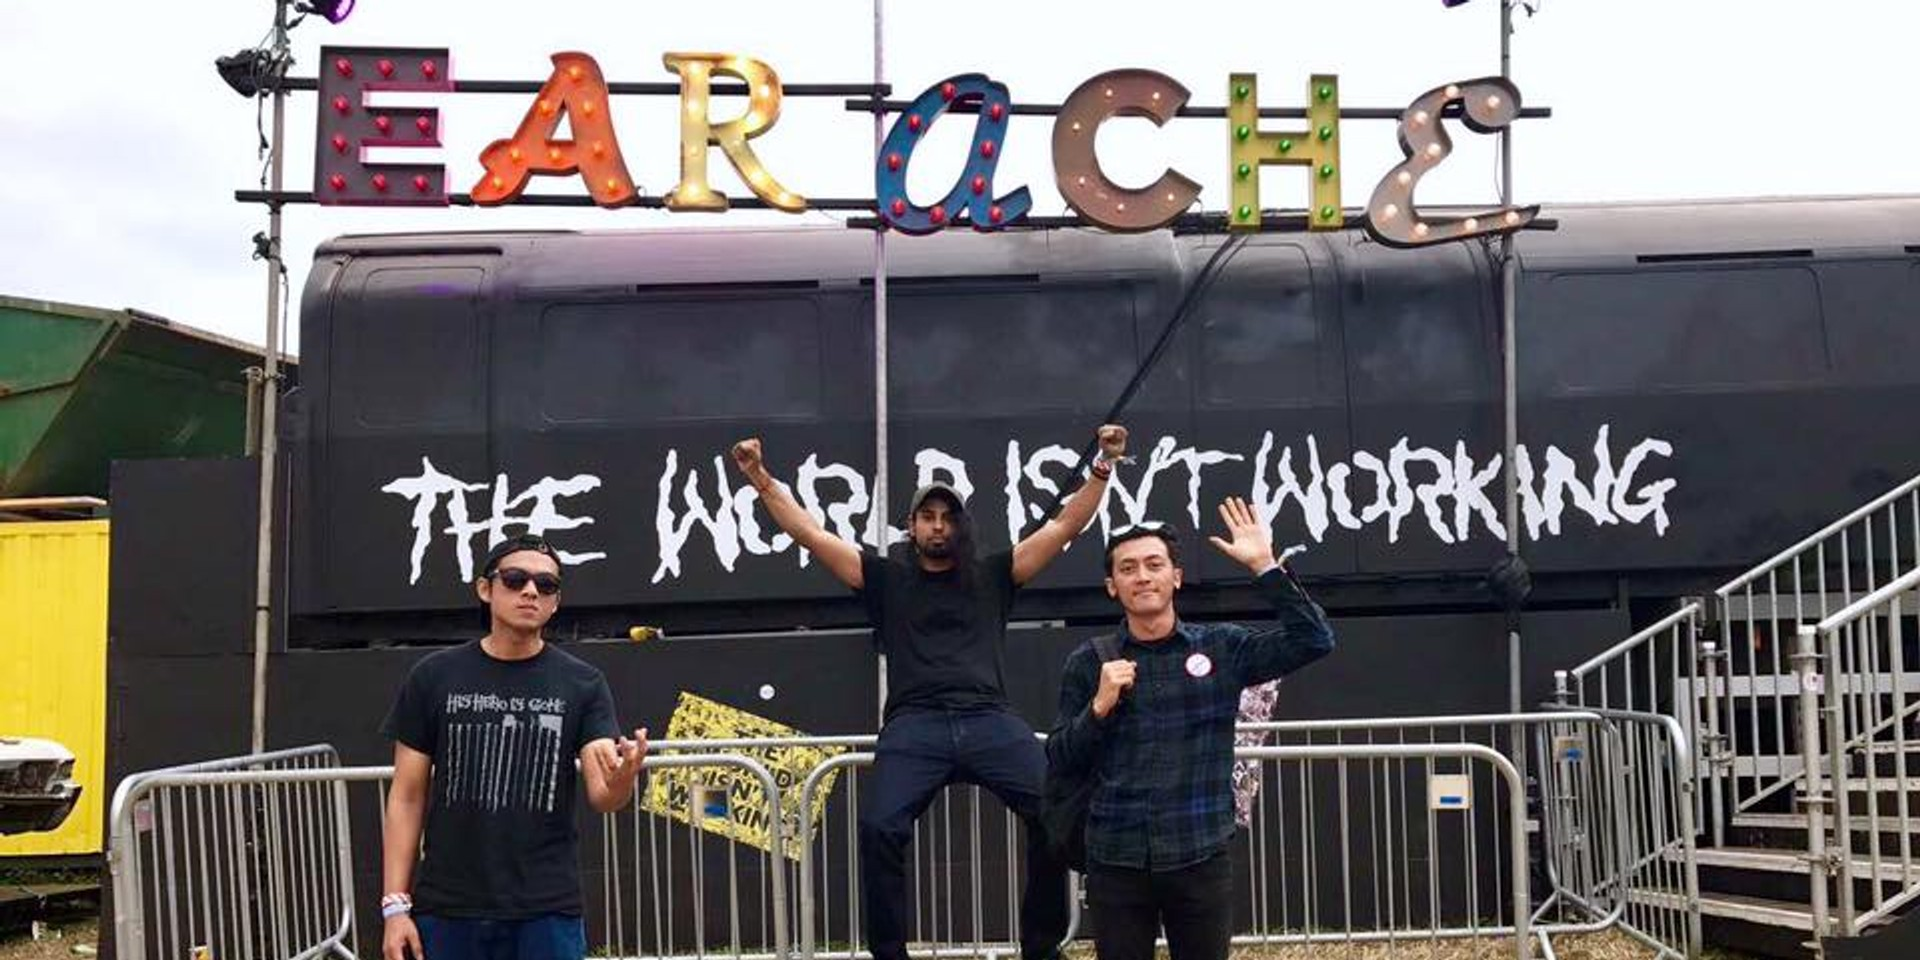 Watch Wormrot's live debut at Glastonbury, profiled by BBC Music